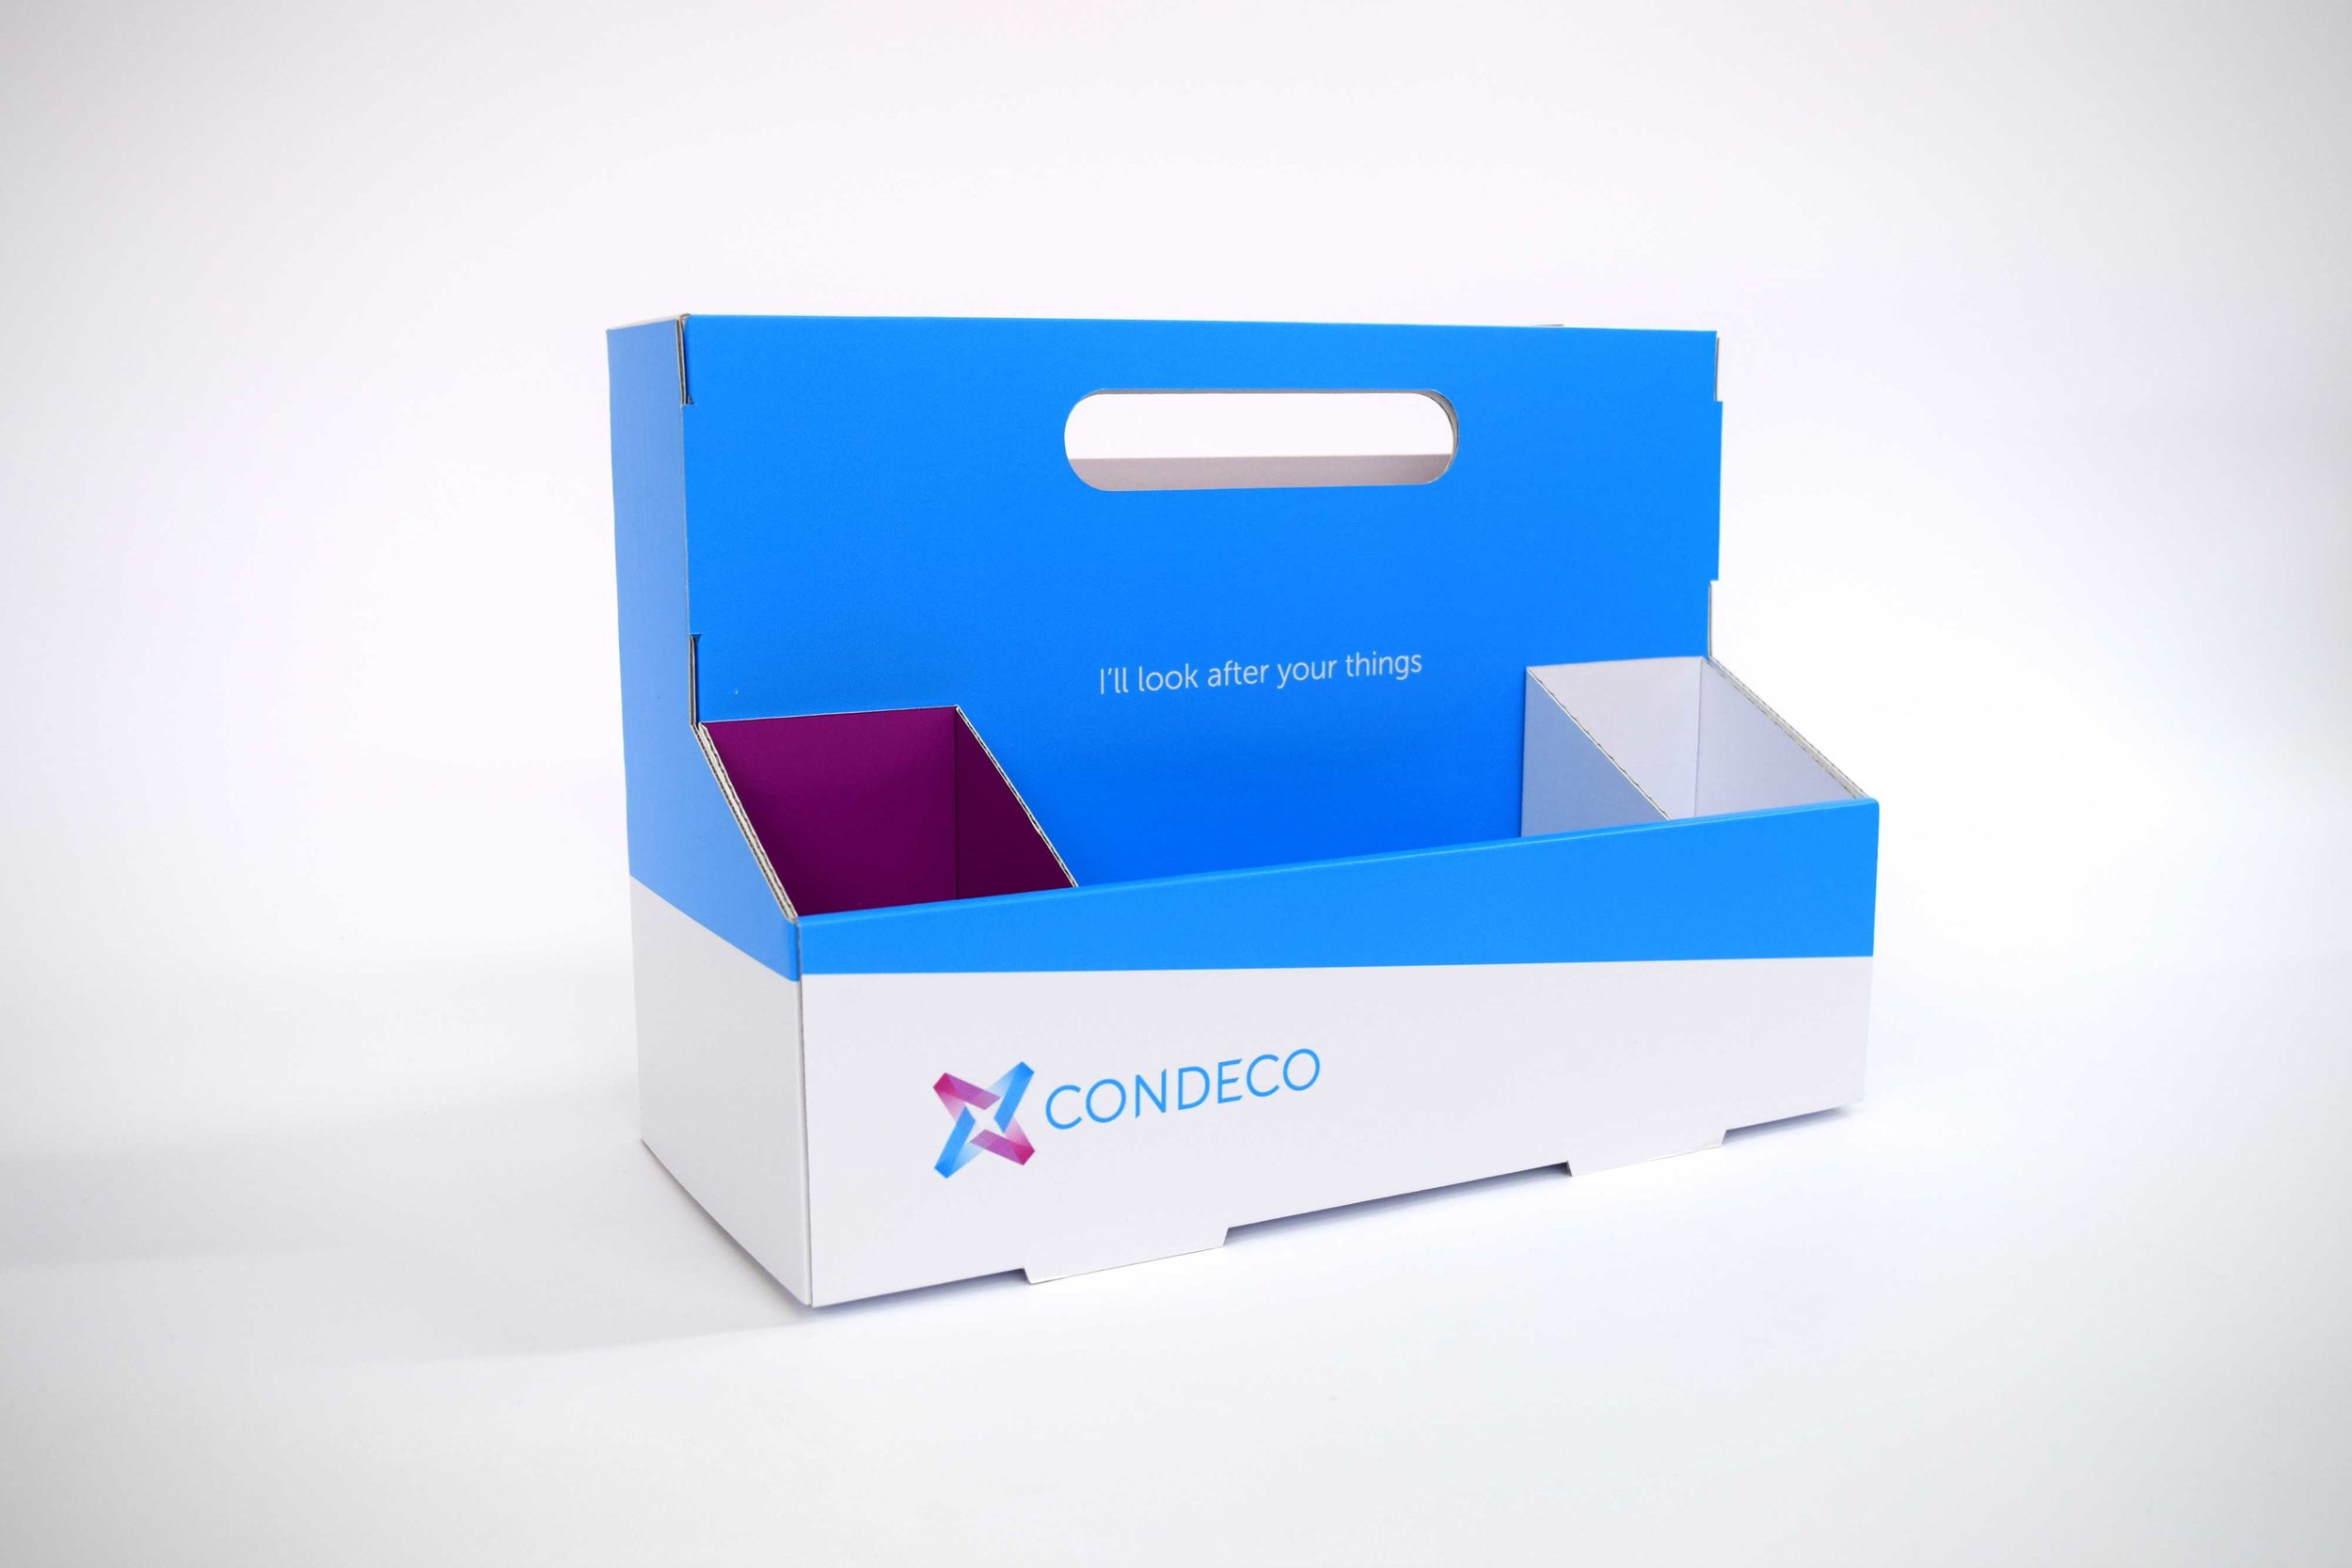 Condecco-Lockerbox.jpg